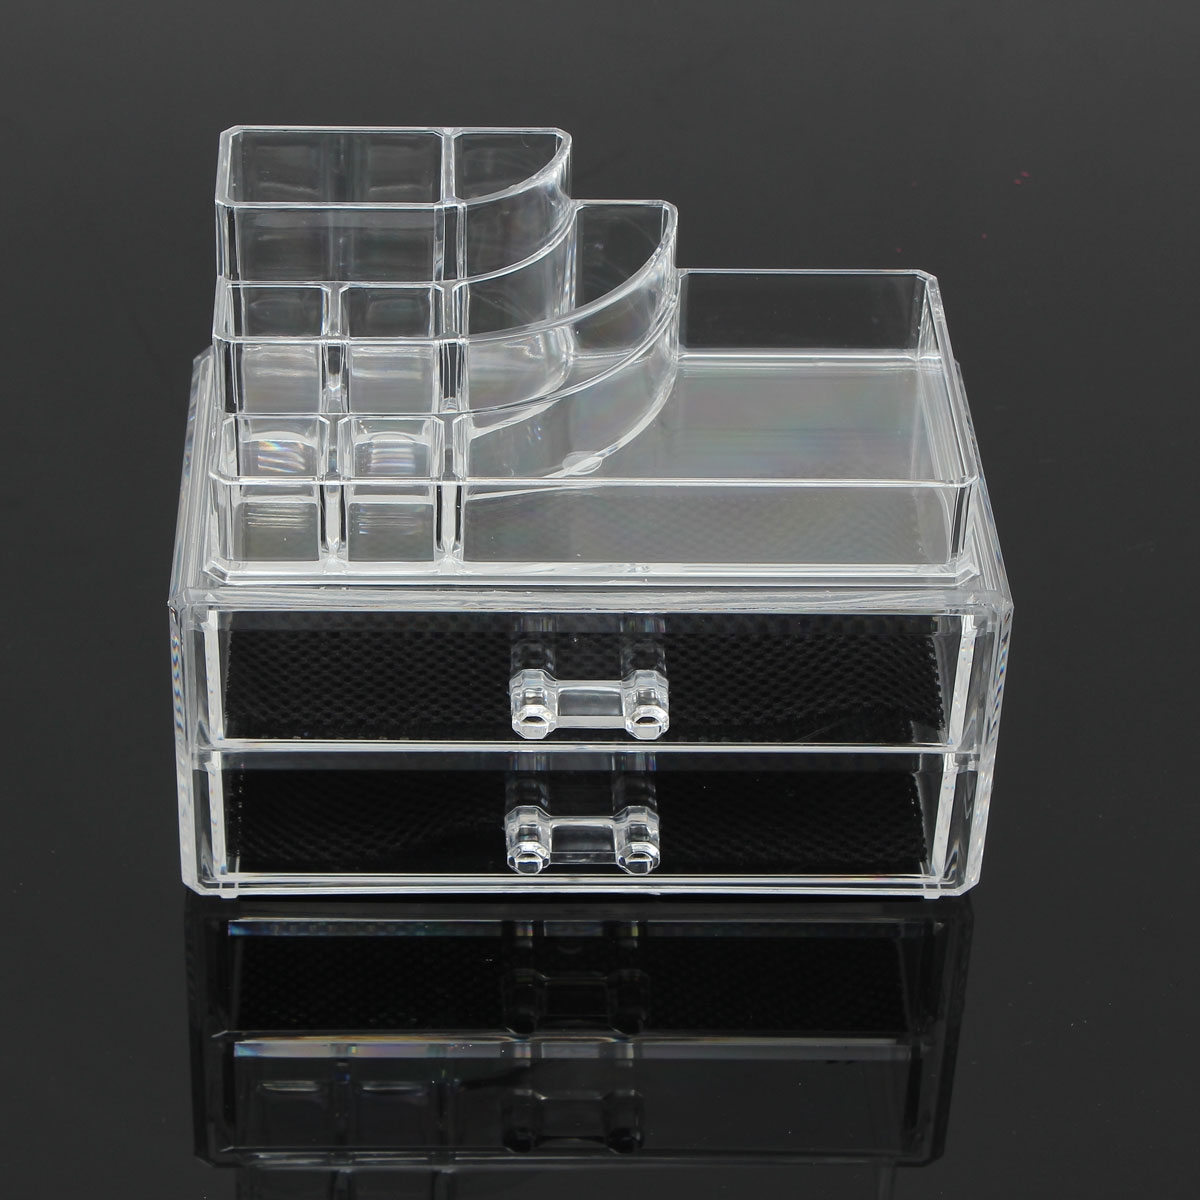 New Clear Acrylic Cosmetic Storage Box Makeup Tool Organizer Plastic Make Up Drawers Case Jewelry Display Lipstick Brush Holder display stand clear acrylic cosmetic organizer makeup case storage makeup organizer organizator makeup brush control holder